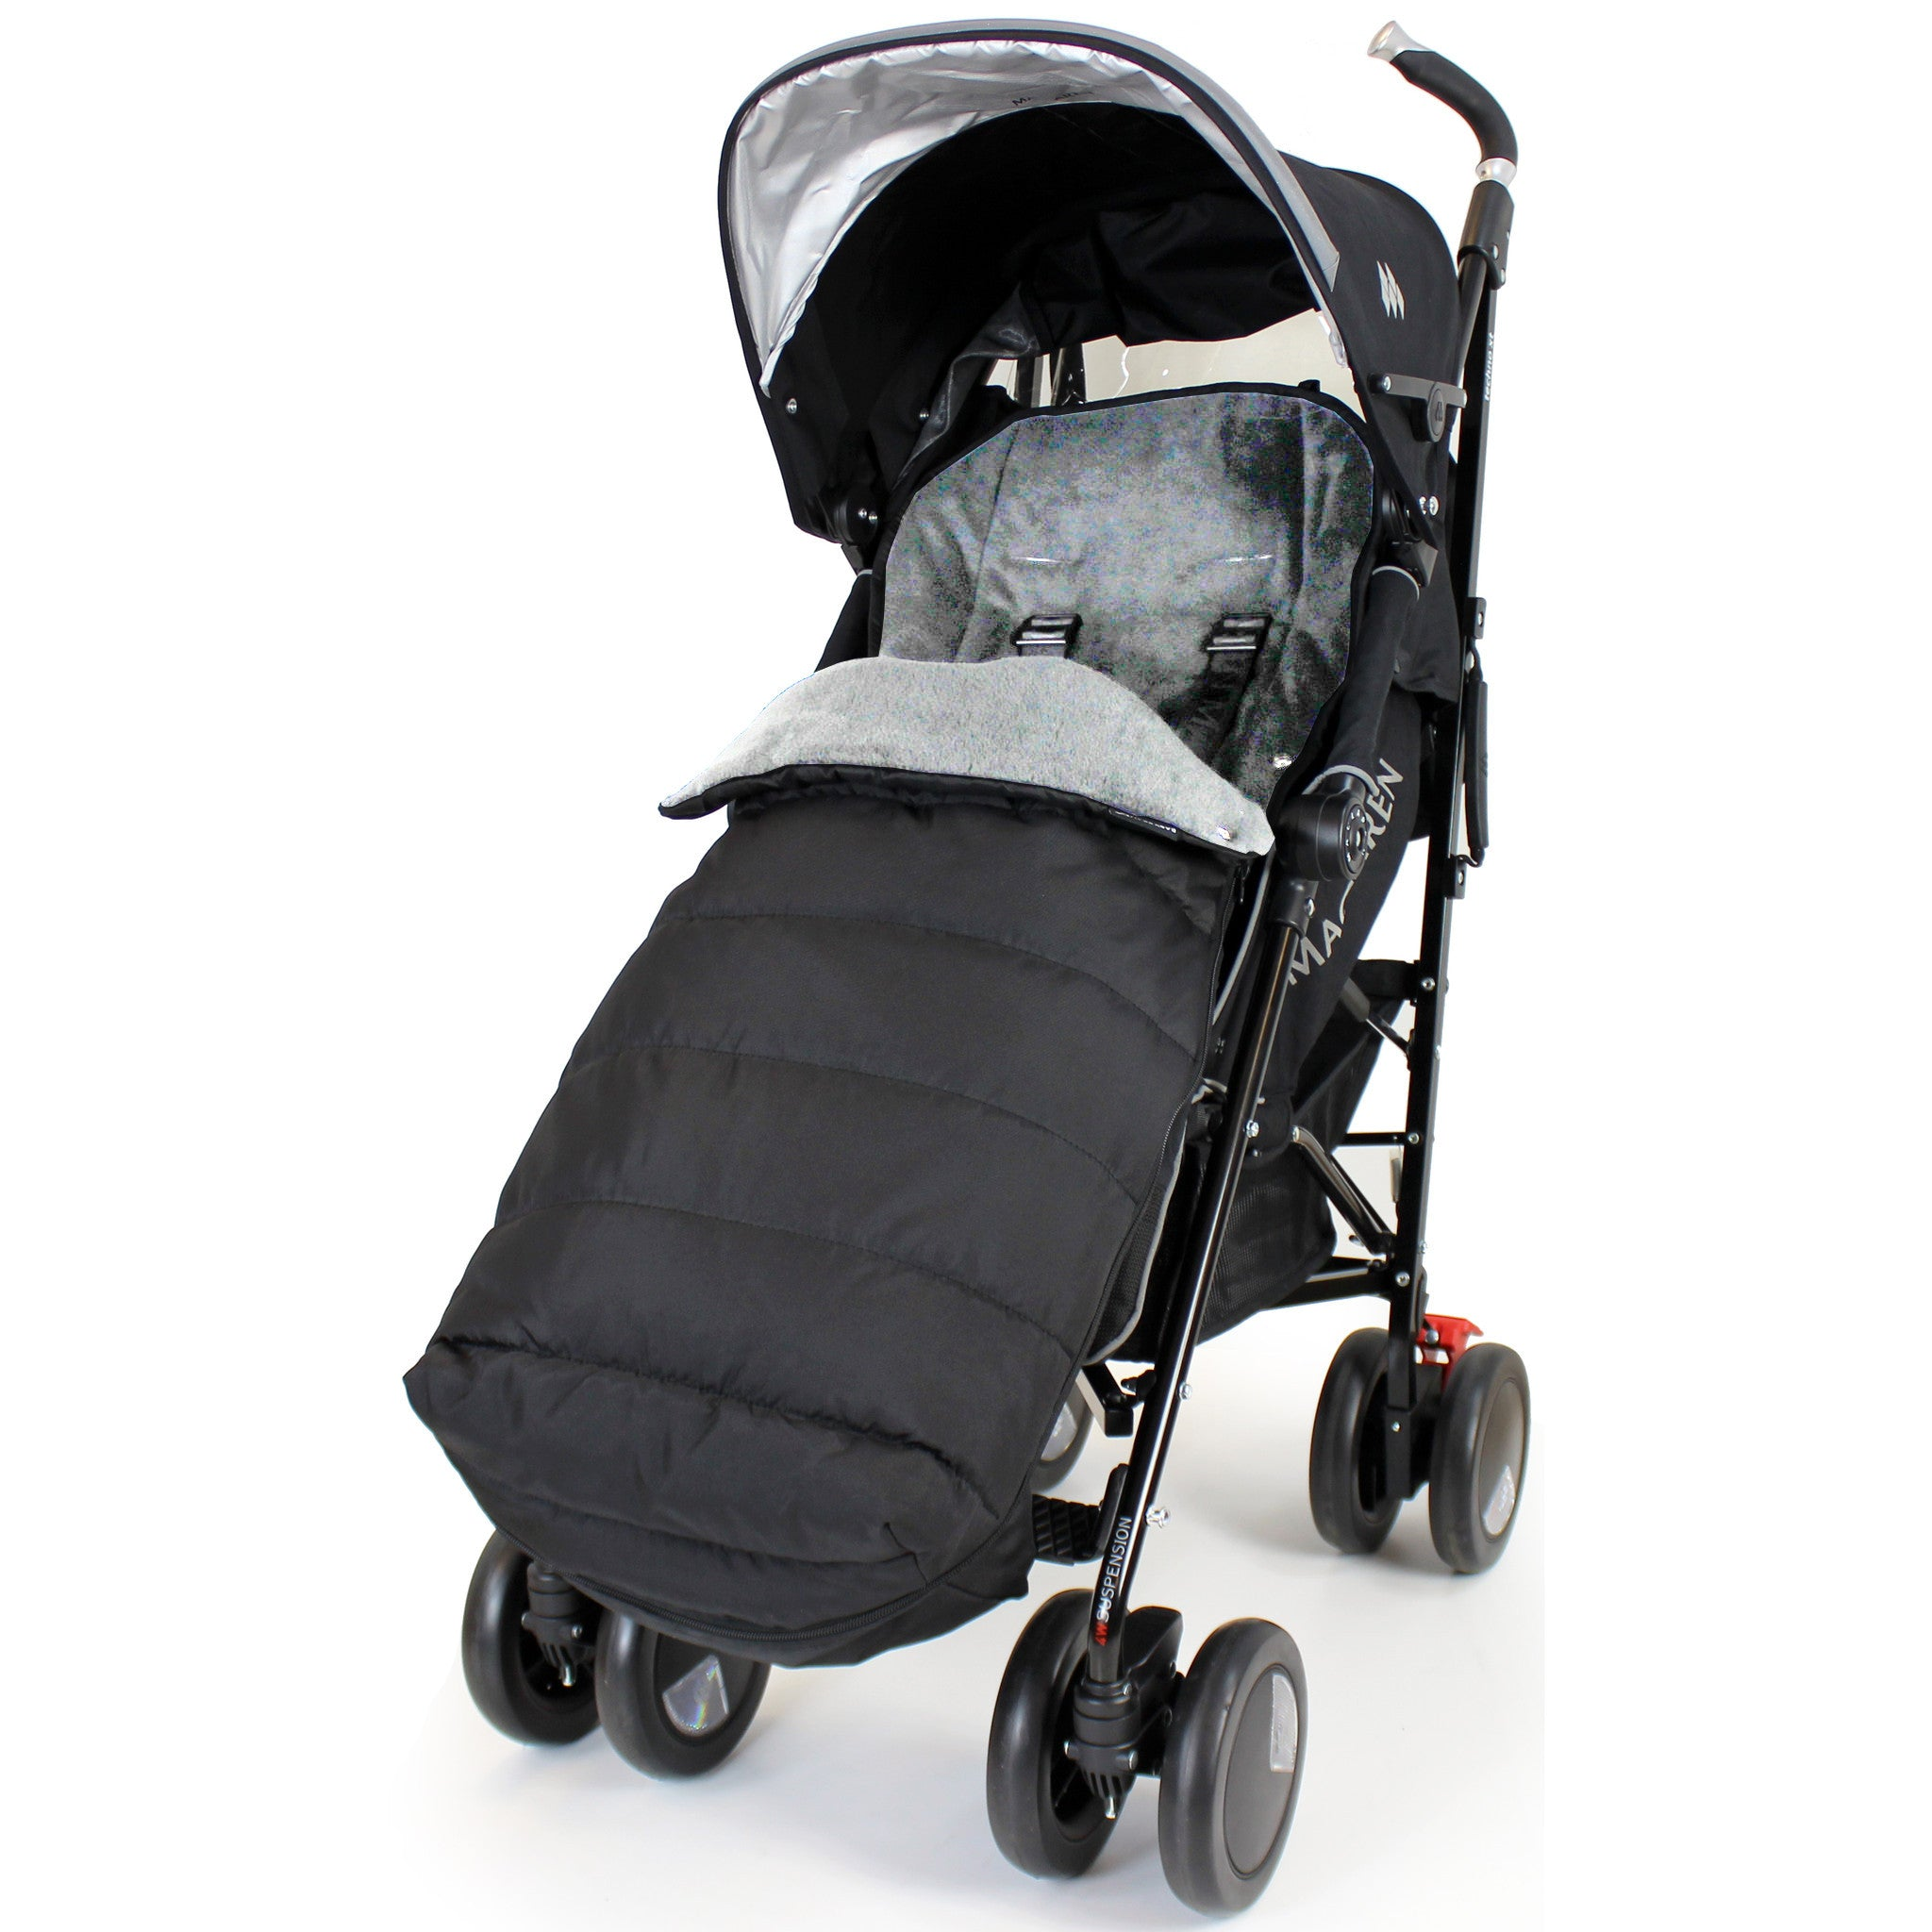 XL Universal Stroller Footmuff Warm Cosy Toes To Fit 99.9/% Of Strollers Padded